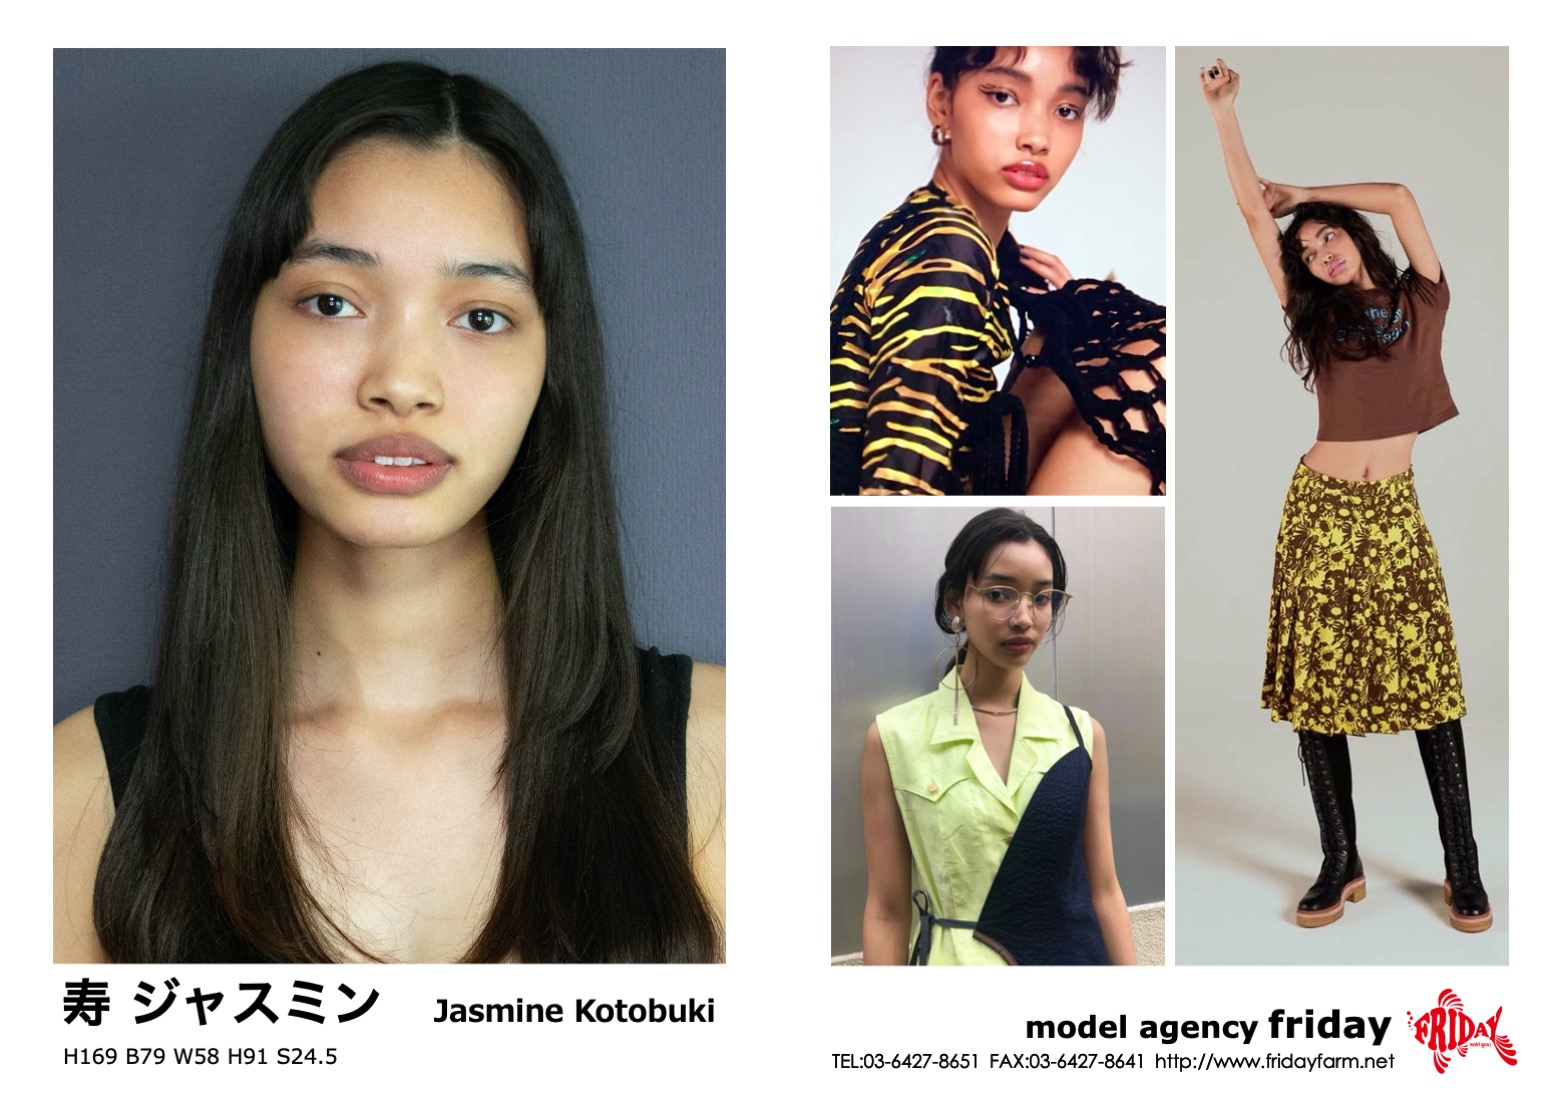 寿 ジャスミン - Jasmine Kotobuki | model agency friday